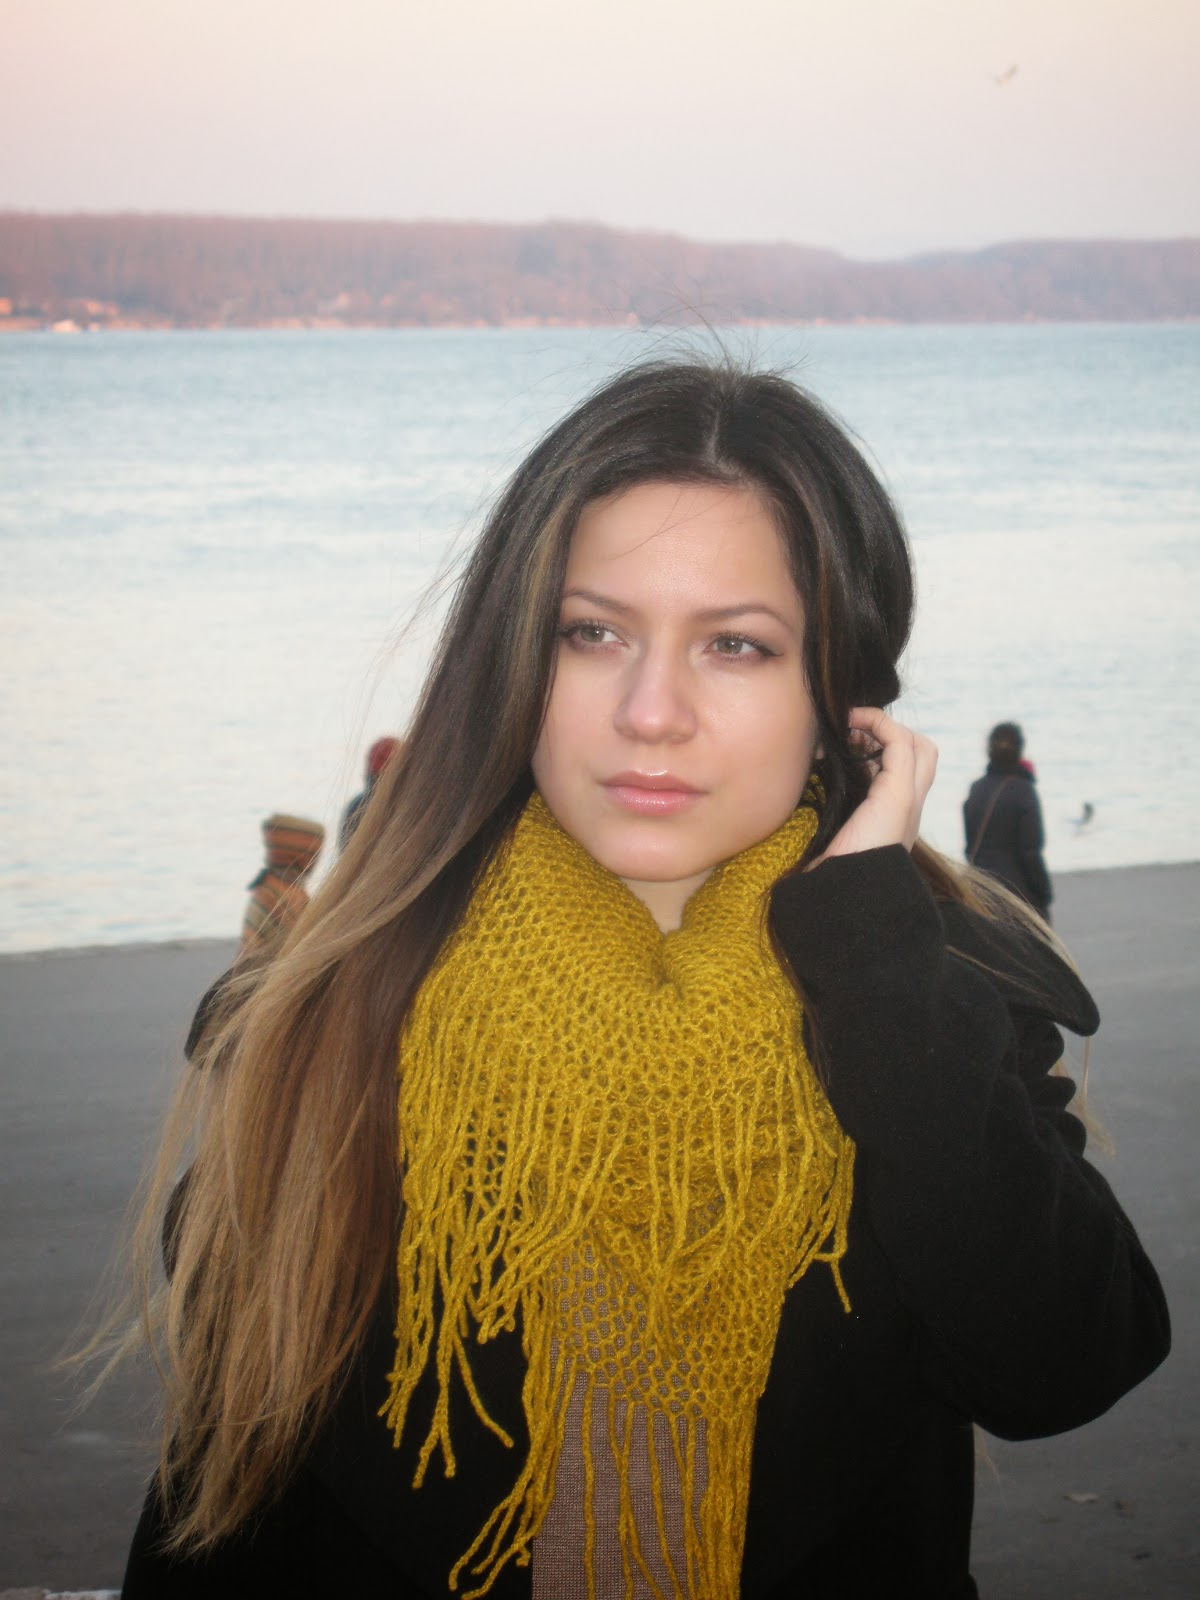 ombre hair, mustard scarf